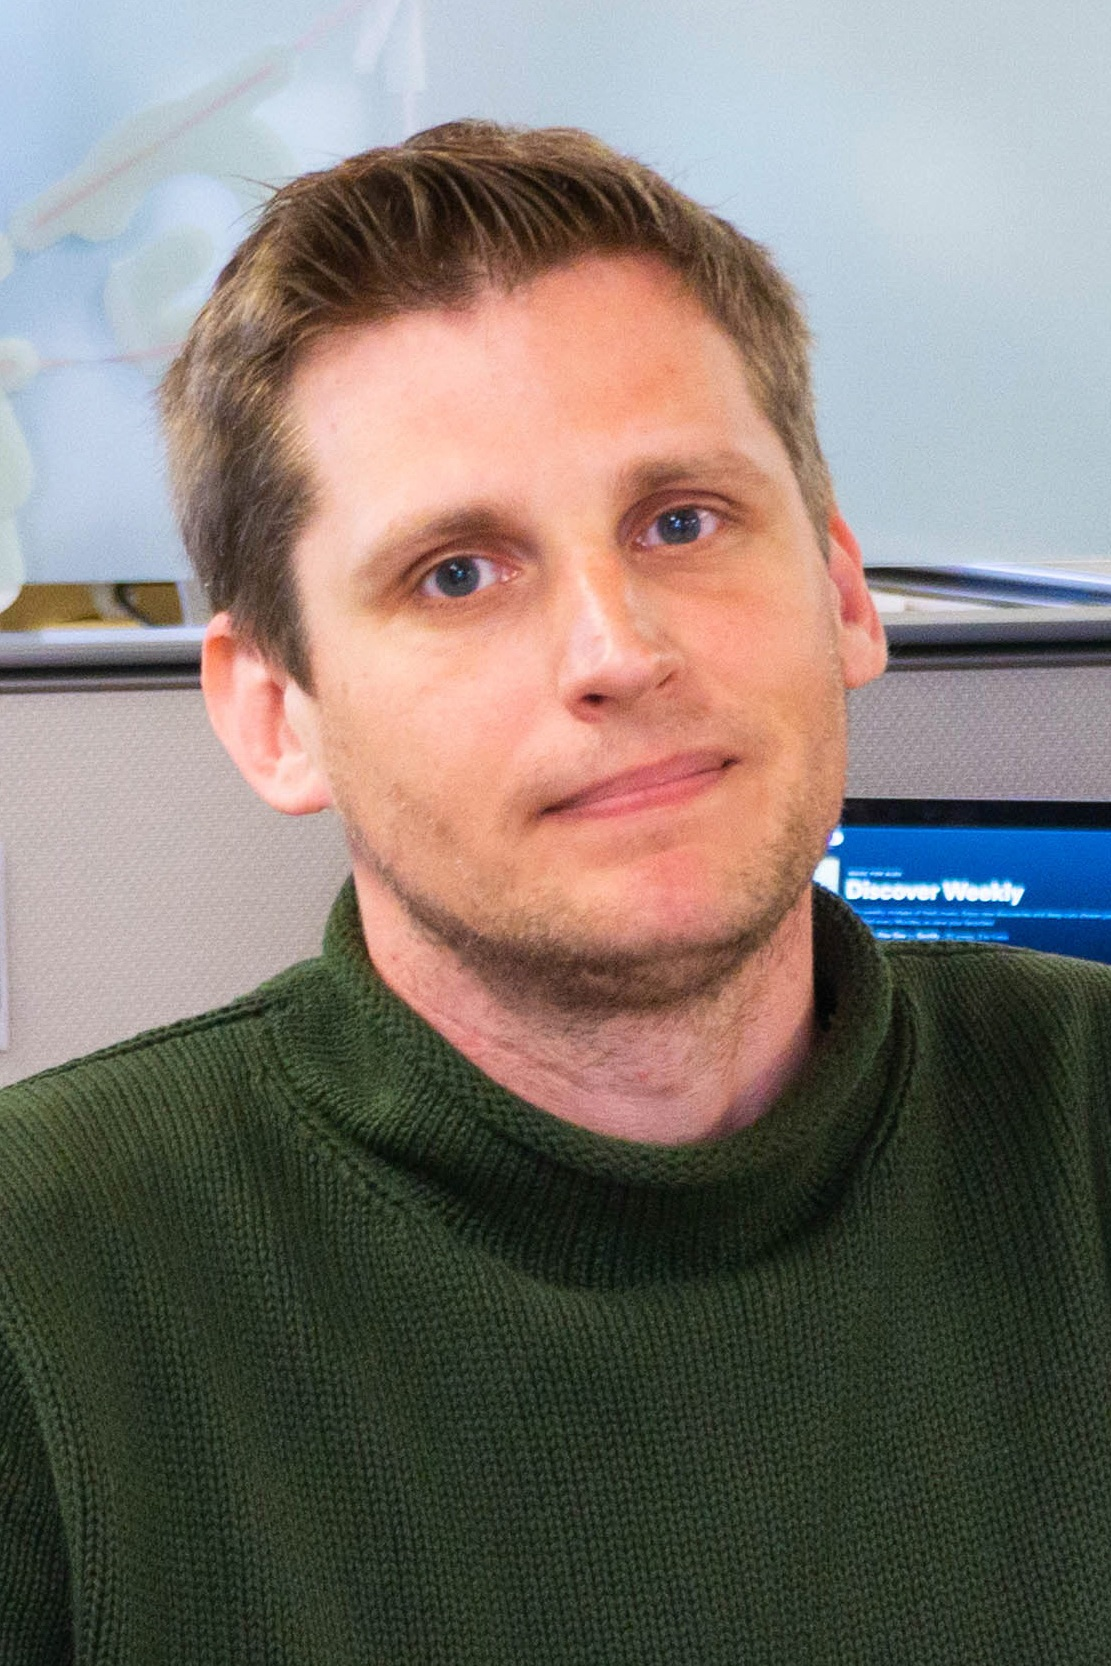 lead designer - Alexandr GheneralovBuilding the bridge between first-time job seekers and the industry of their choice. Helping young talents to pursue their dreams. Advocating for communication, story-telling and visual language. Big data, fundraising and social networking with Roundglass and Edifecs